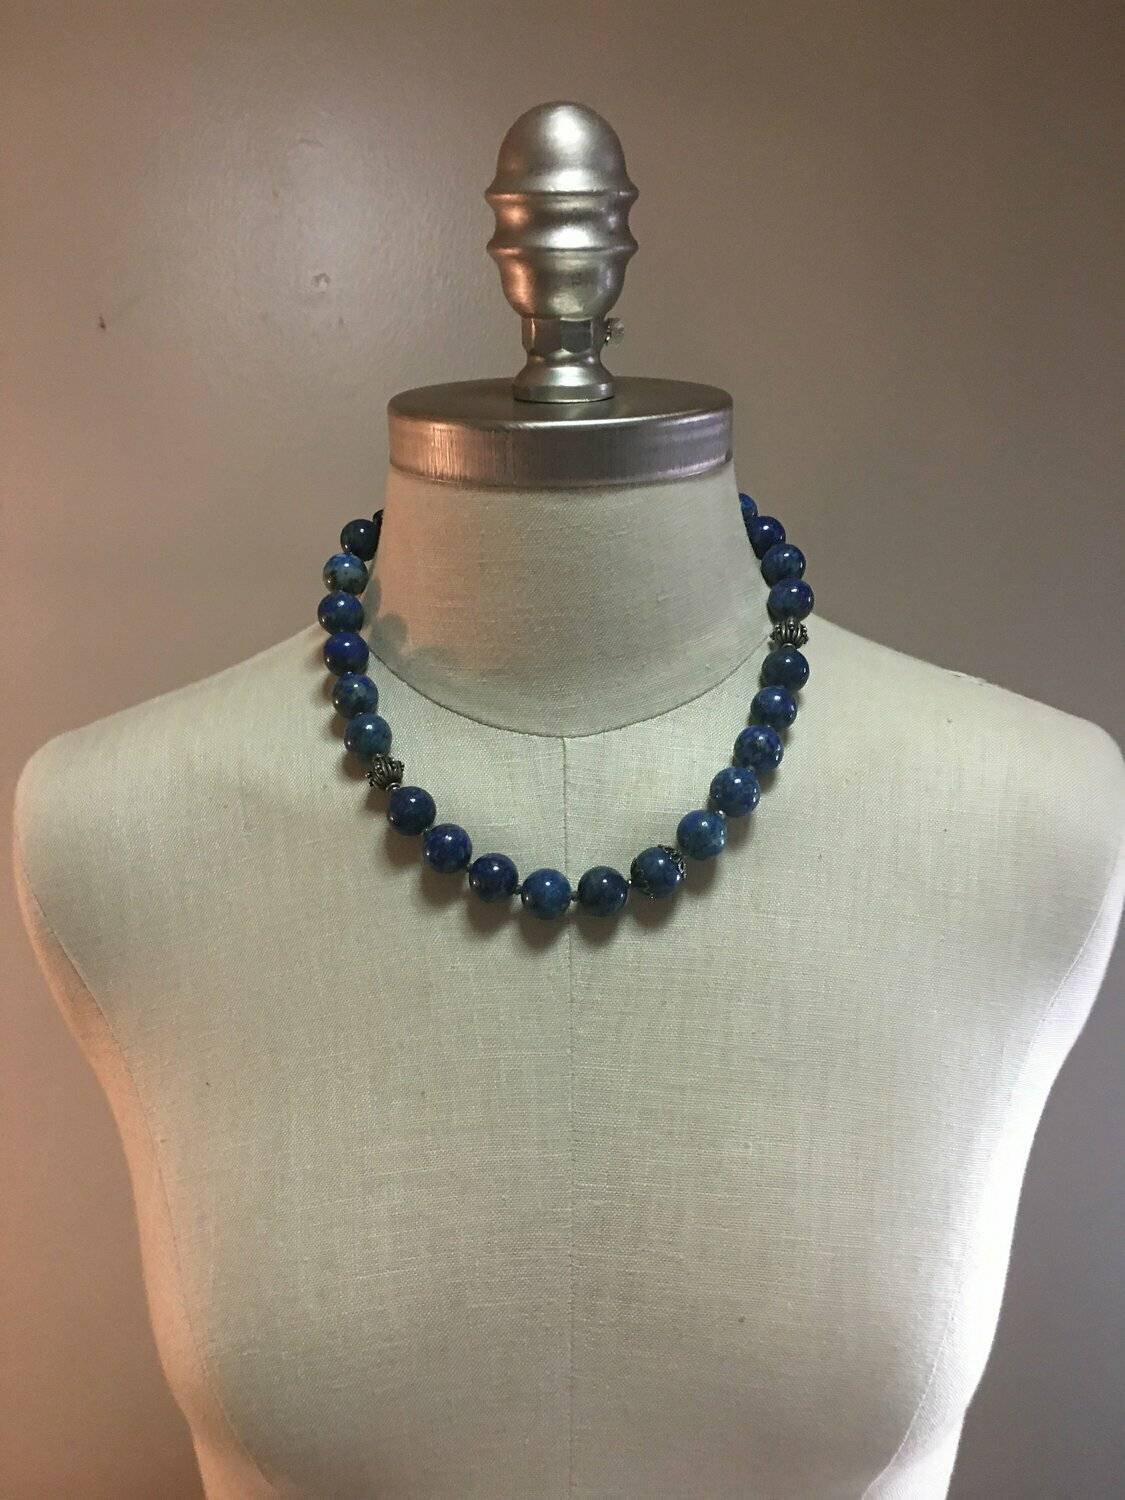 Lapis Lazuli and Sterling Silver Beaded necklace with Toggle closure